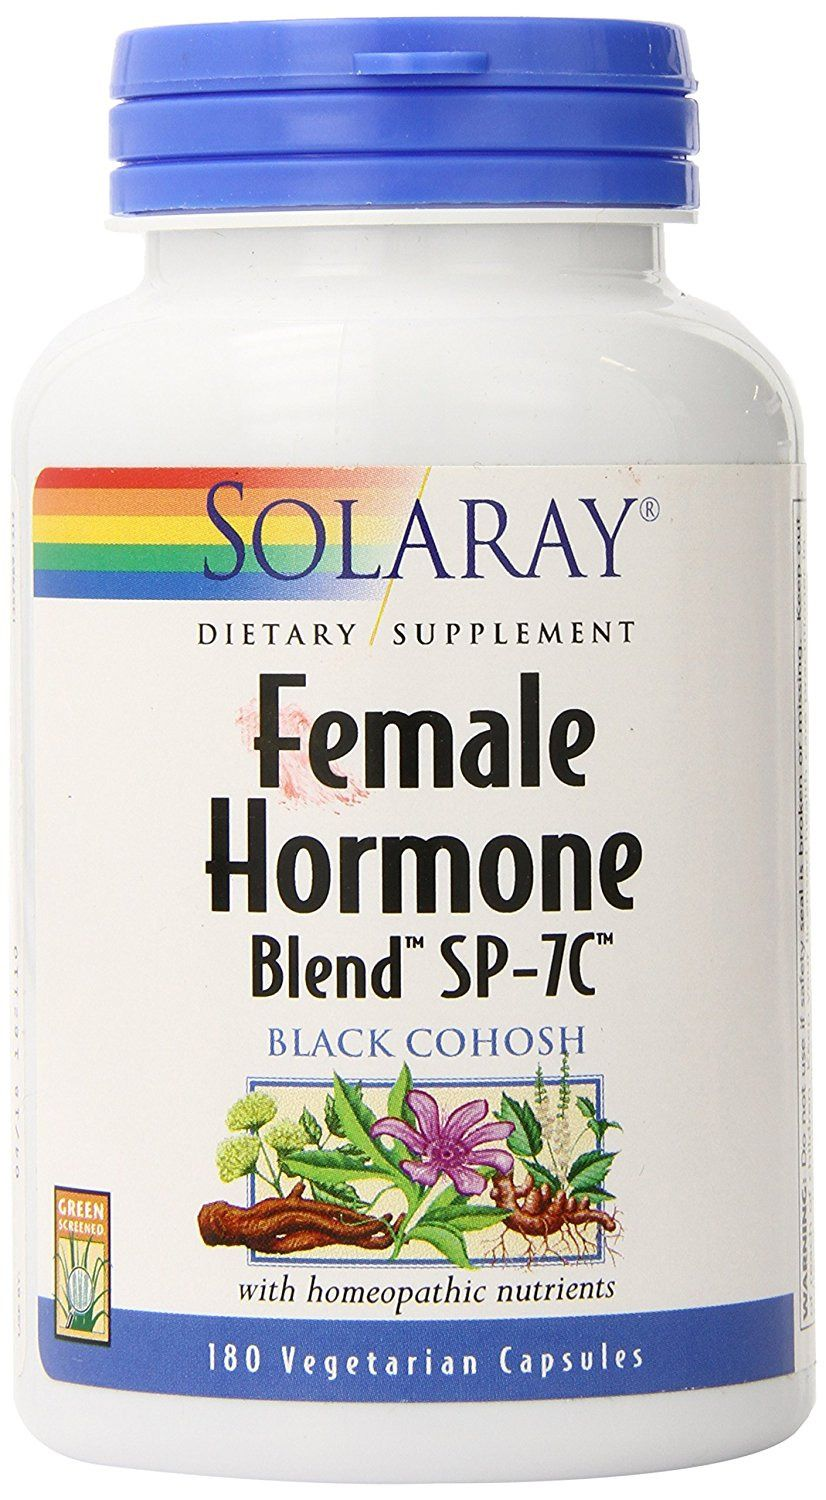 Natural hormones transsexual consider